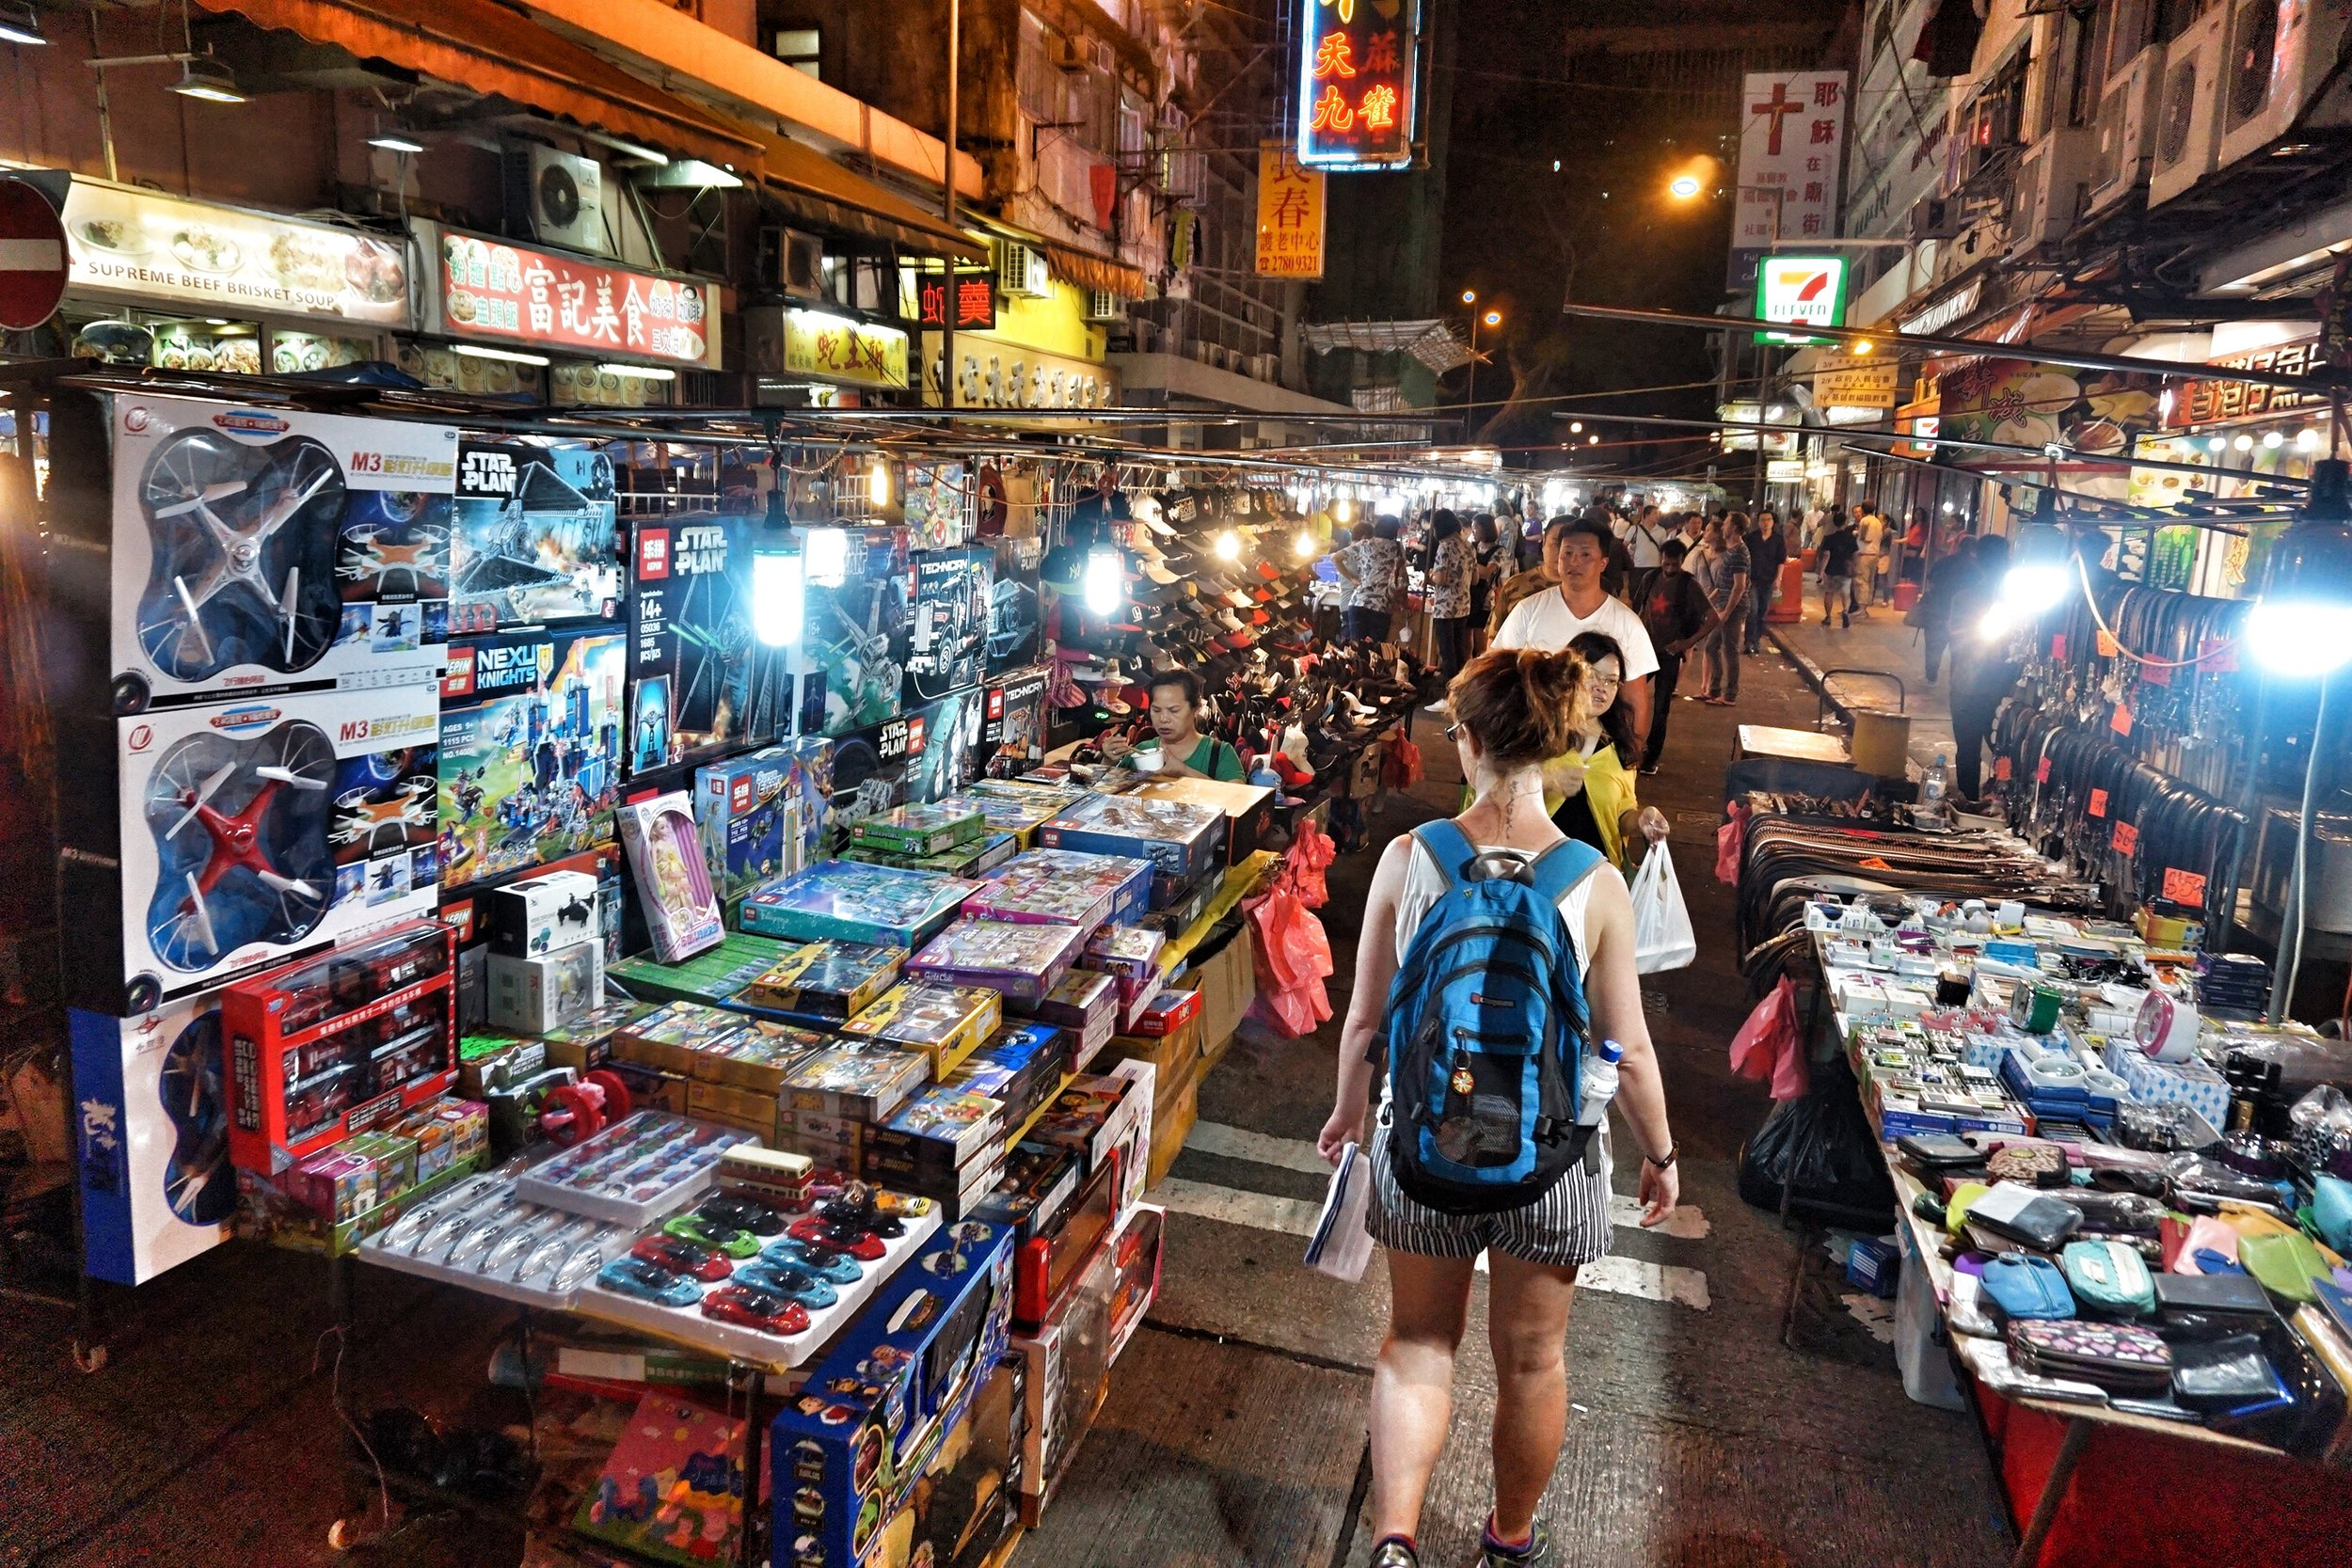 Check out the markets on your night tour Hong Kong